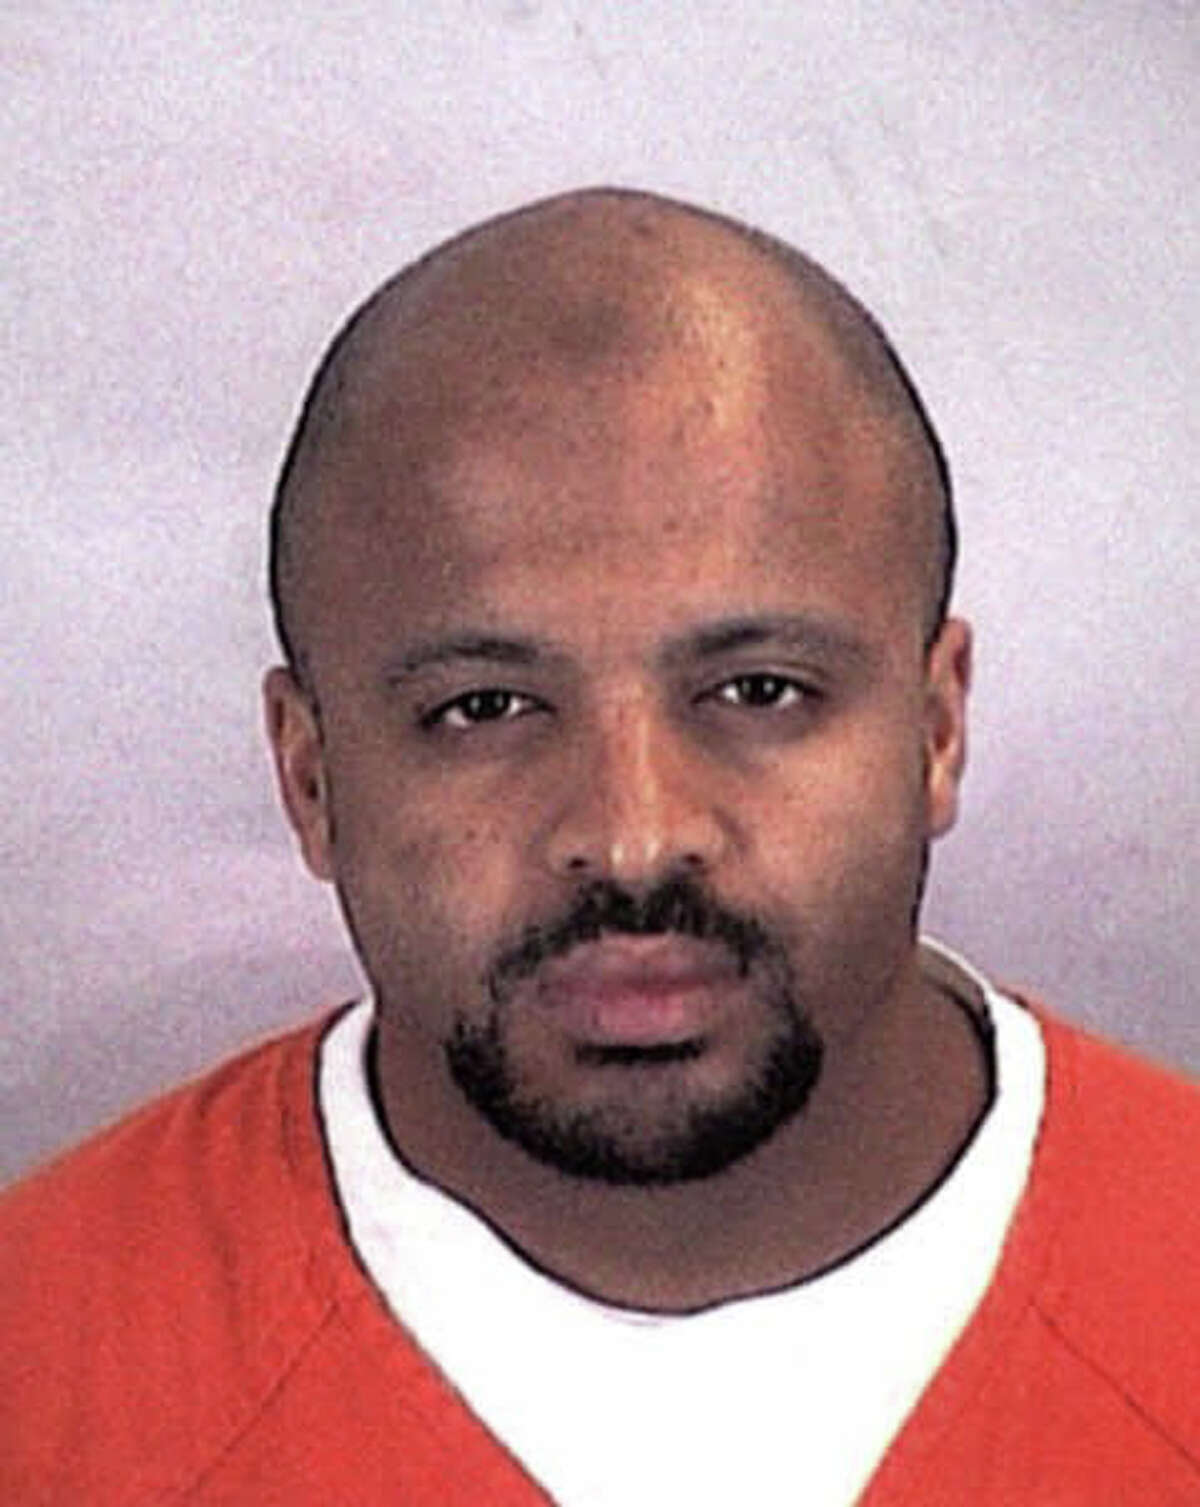 """FILE - In this undated file photo provided by the Sherburne County Sheriff Office, Zacarias Moussaoui is shown. Lawyers for victims of the Sept. 11 attacks say in a lawsuit that they have amassed new evidence that agents of Saudi Arabia """"knowingly and directly"""" helped the hijackers. They say they have obtained sworn testimony from Moussaoui, the so-called 20th hijacker to support their claims. The Embassy of Saudi Arabia in Washington said in a statement Wednesday, Feb. 4, 2015, that Moussaoui's claims come from a """"deranged criminal"""" and there is no evidence to support them.(AP Photo/Sherburne County, Minn., Sheriff's Office, File) ORG XMIT: NY115"""